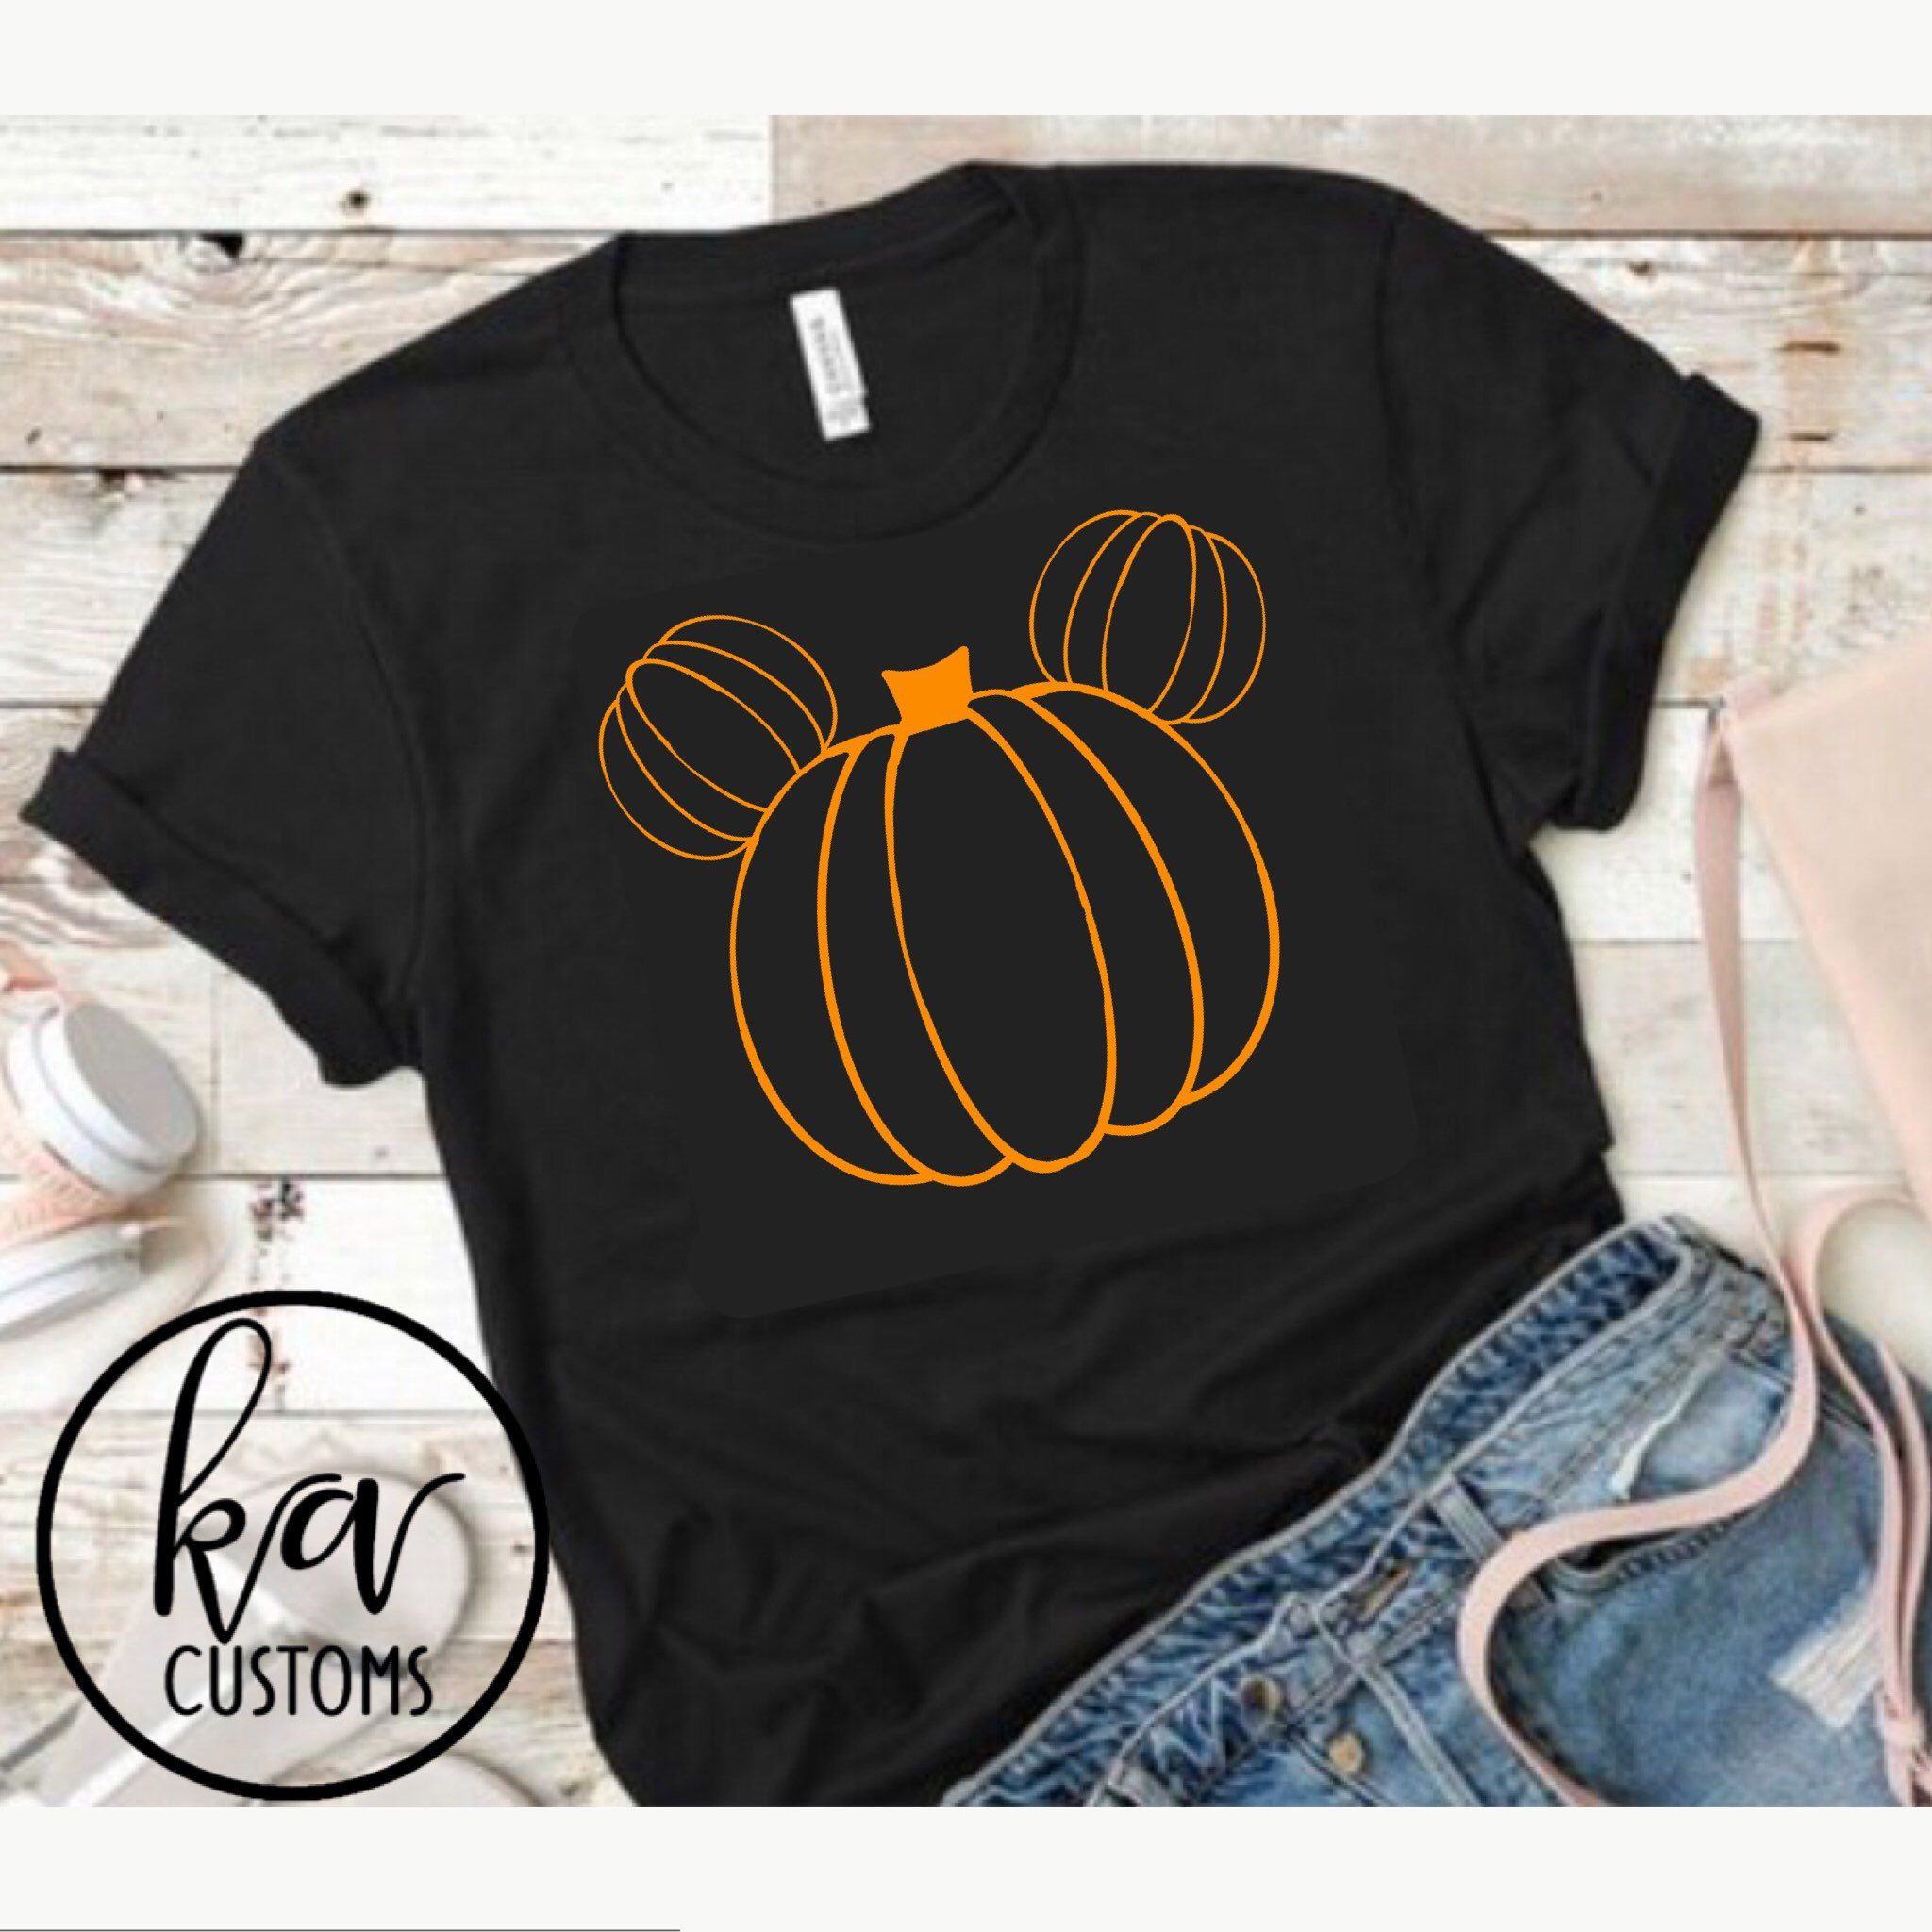 Disney Halloween Shirts Etsy.Halloween Disney Shirt Womens Disney Shirt Halloween